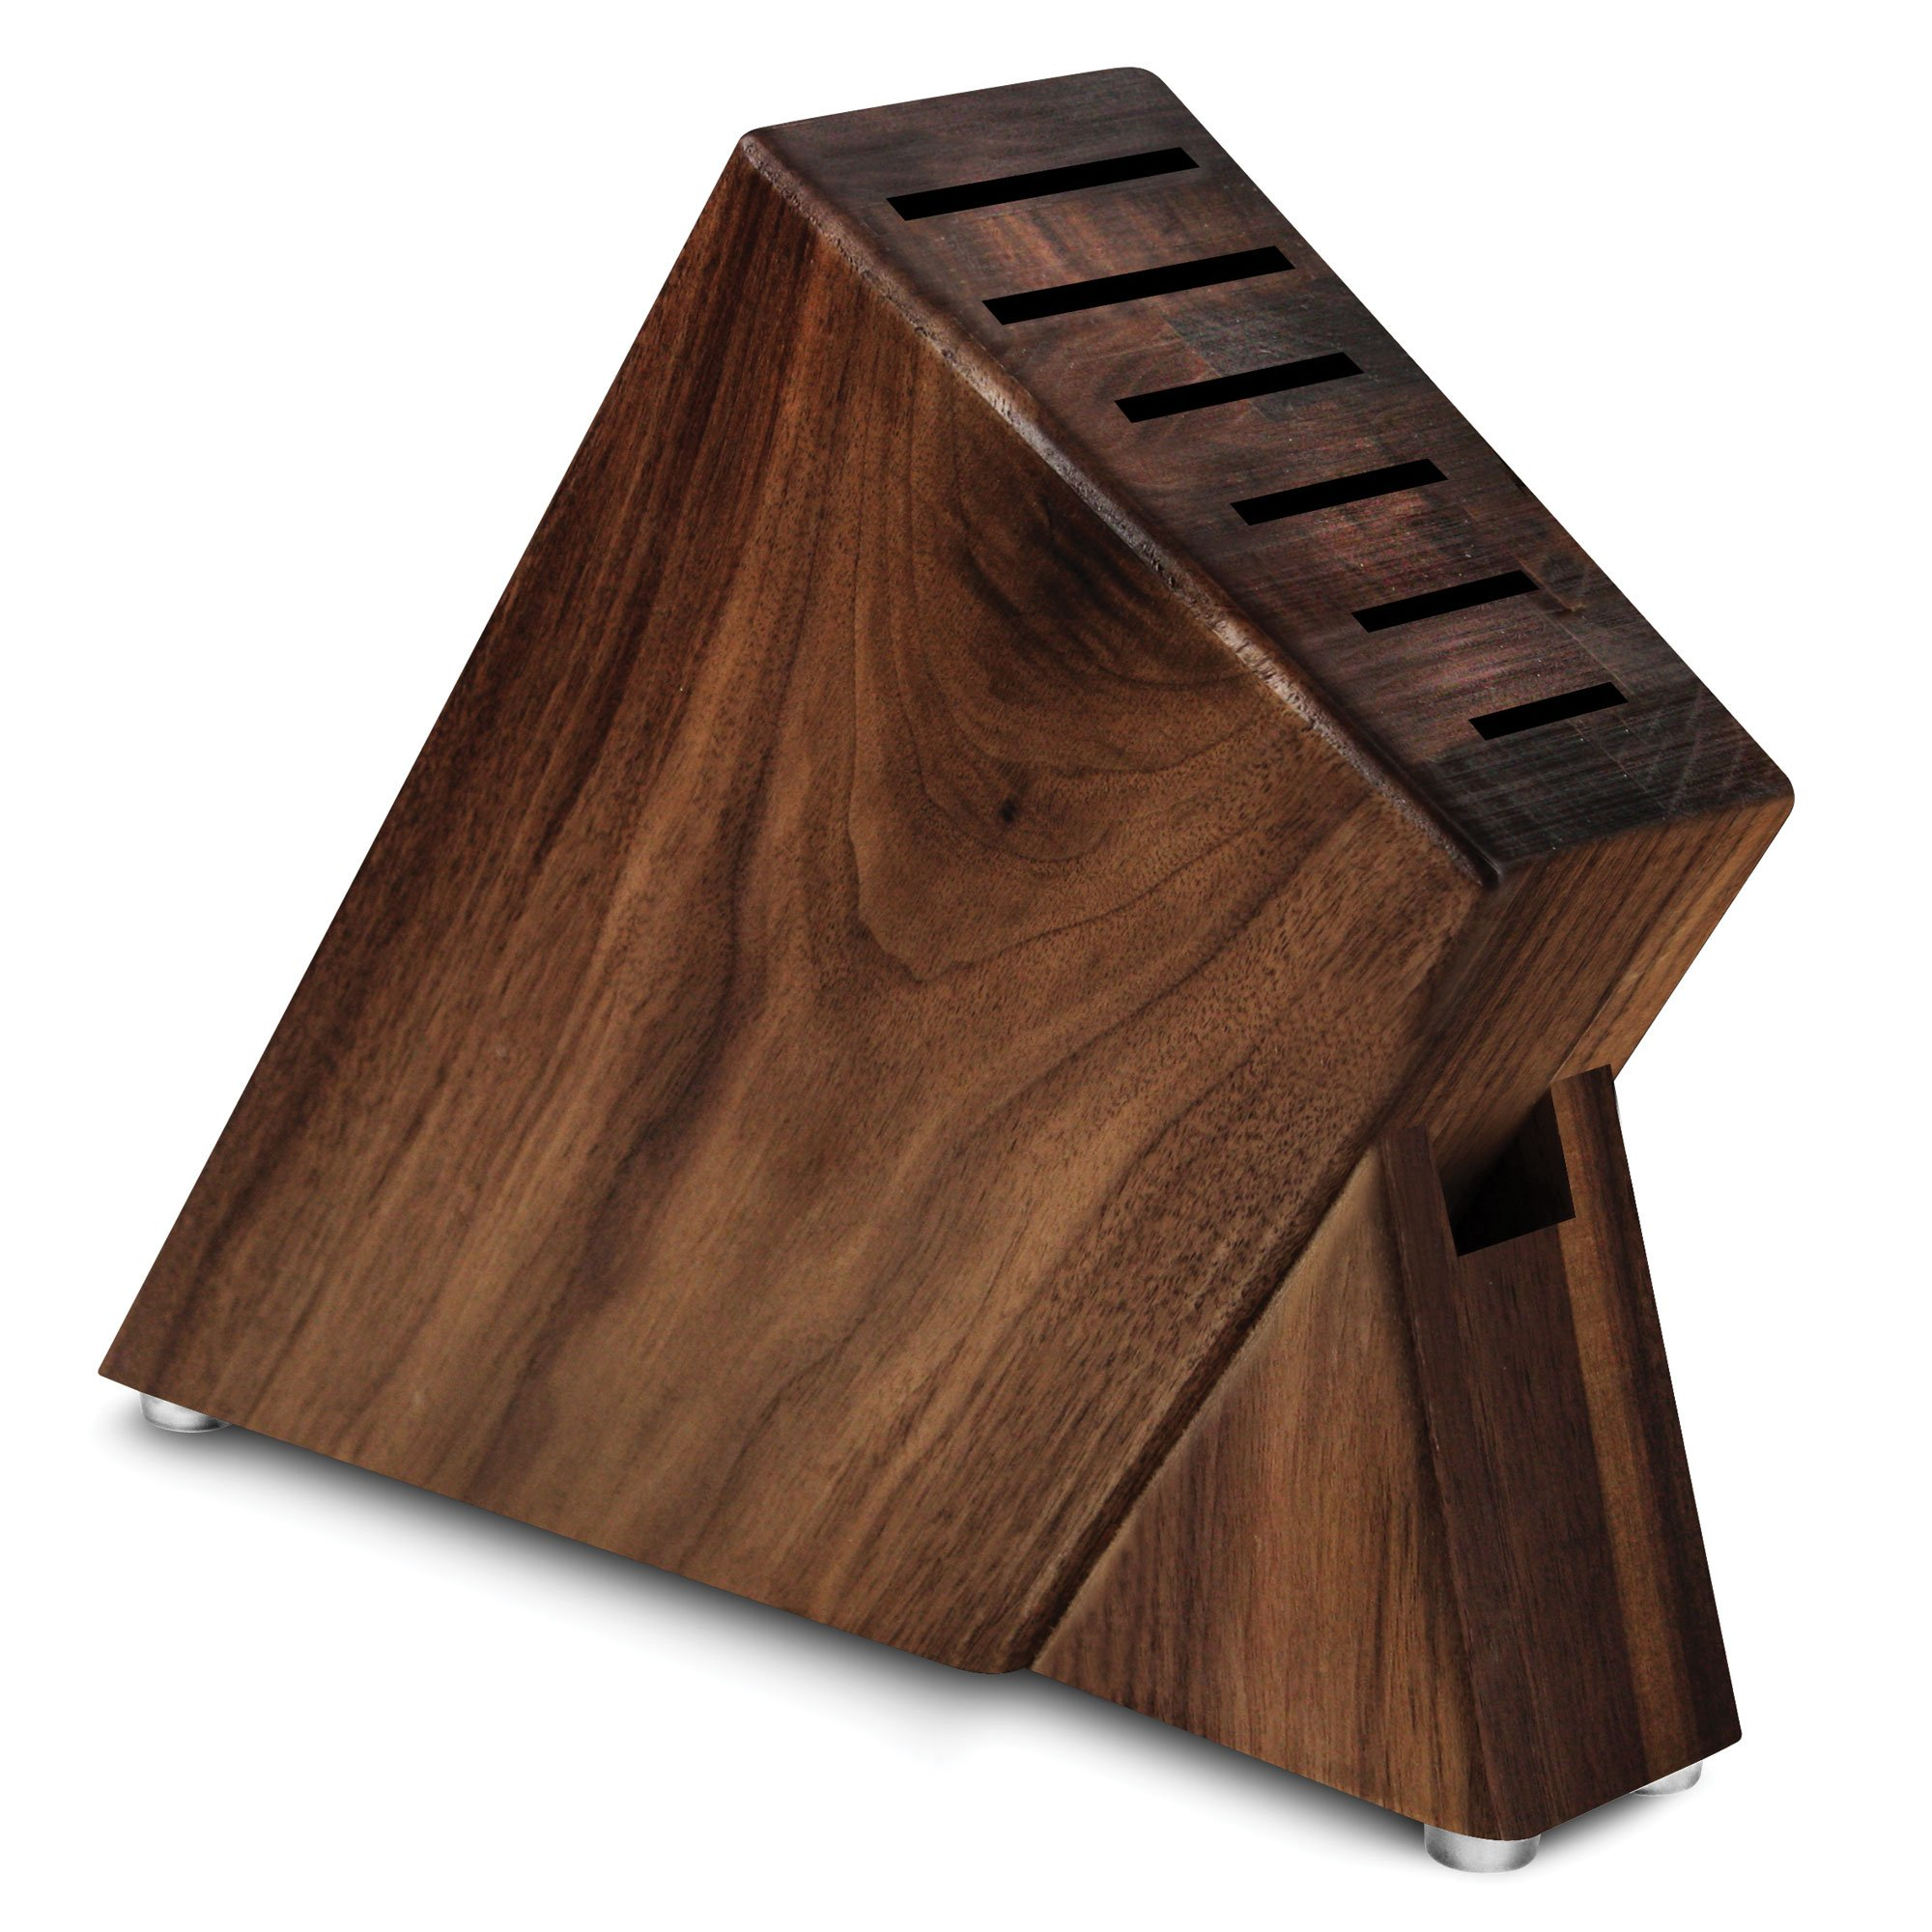 Cutlery and More 7-slot Slim Knife Block (Walnut)